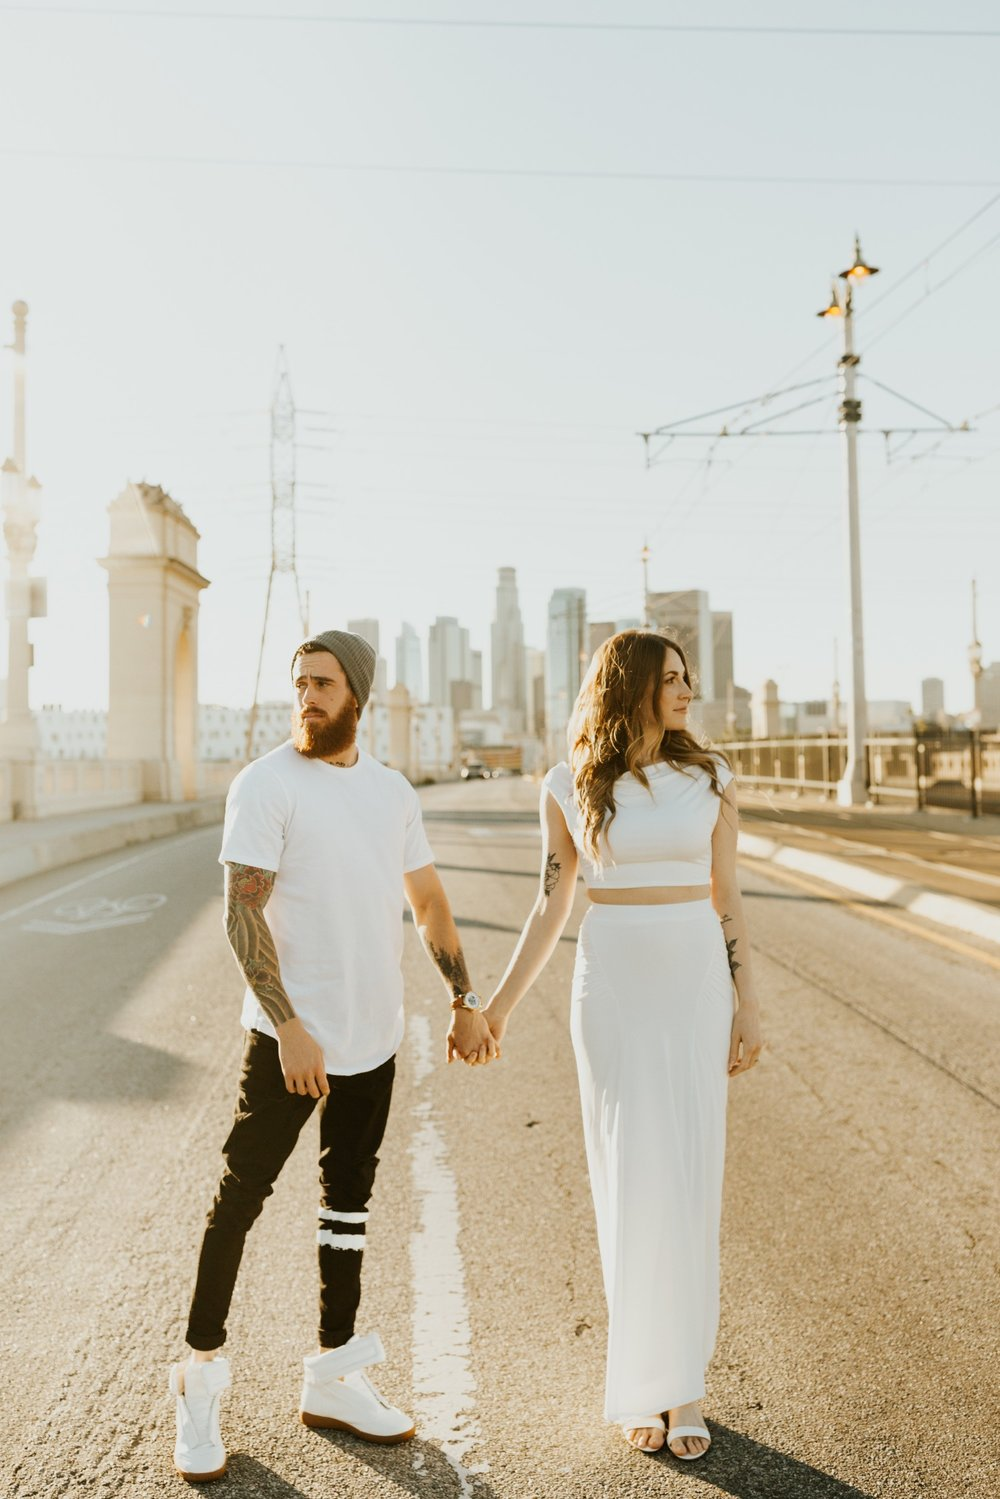 04_Downtown Arts District Los Angeles Engagement Session Megan & Ronnie | Emily Magers Photography-20.jpg